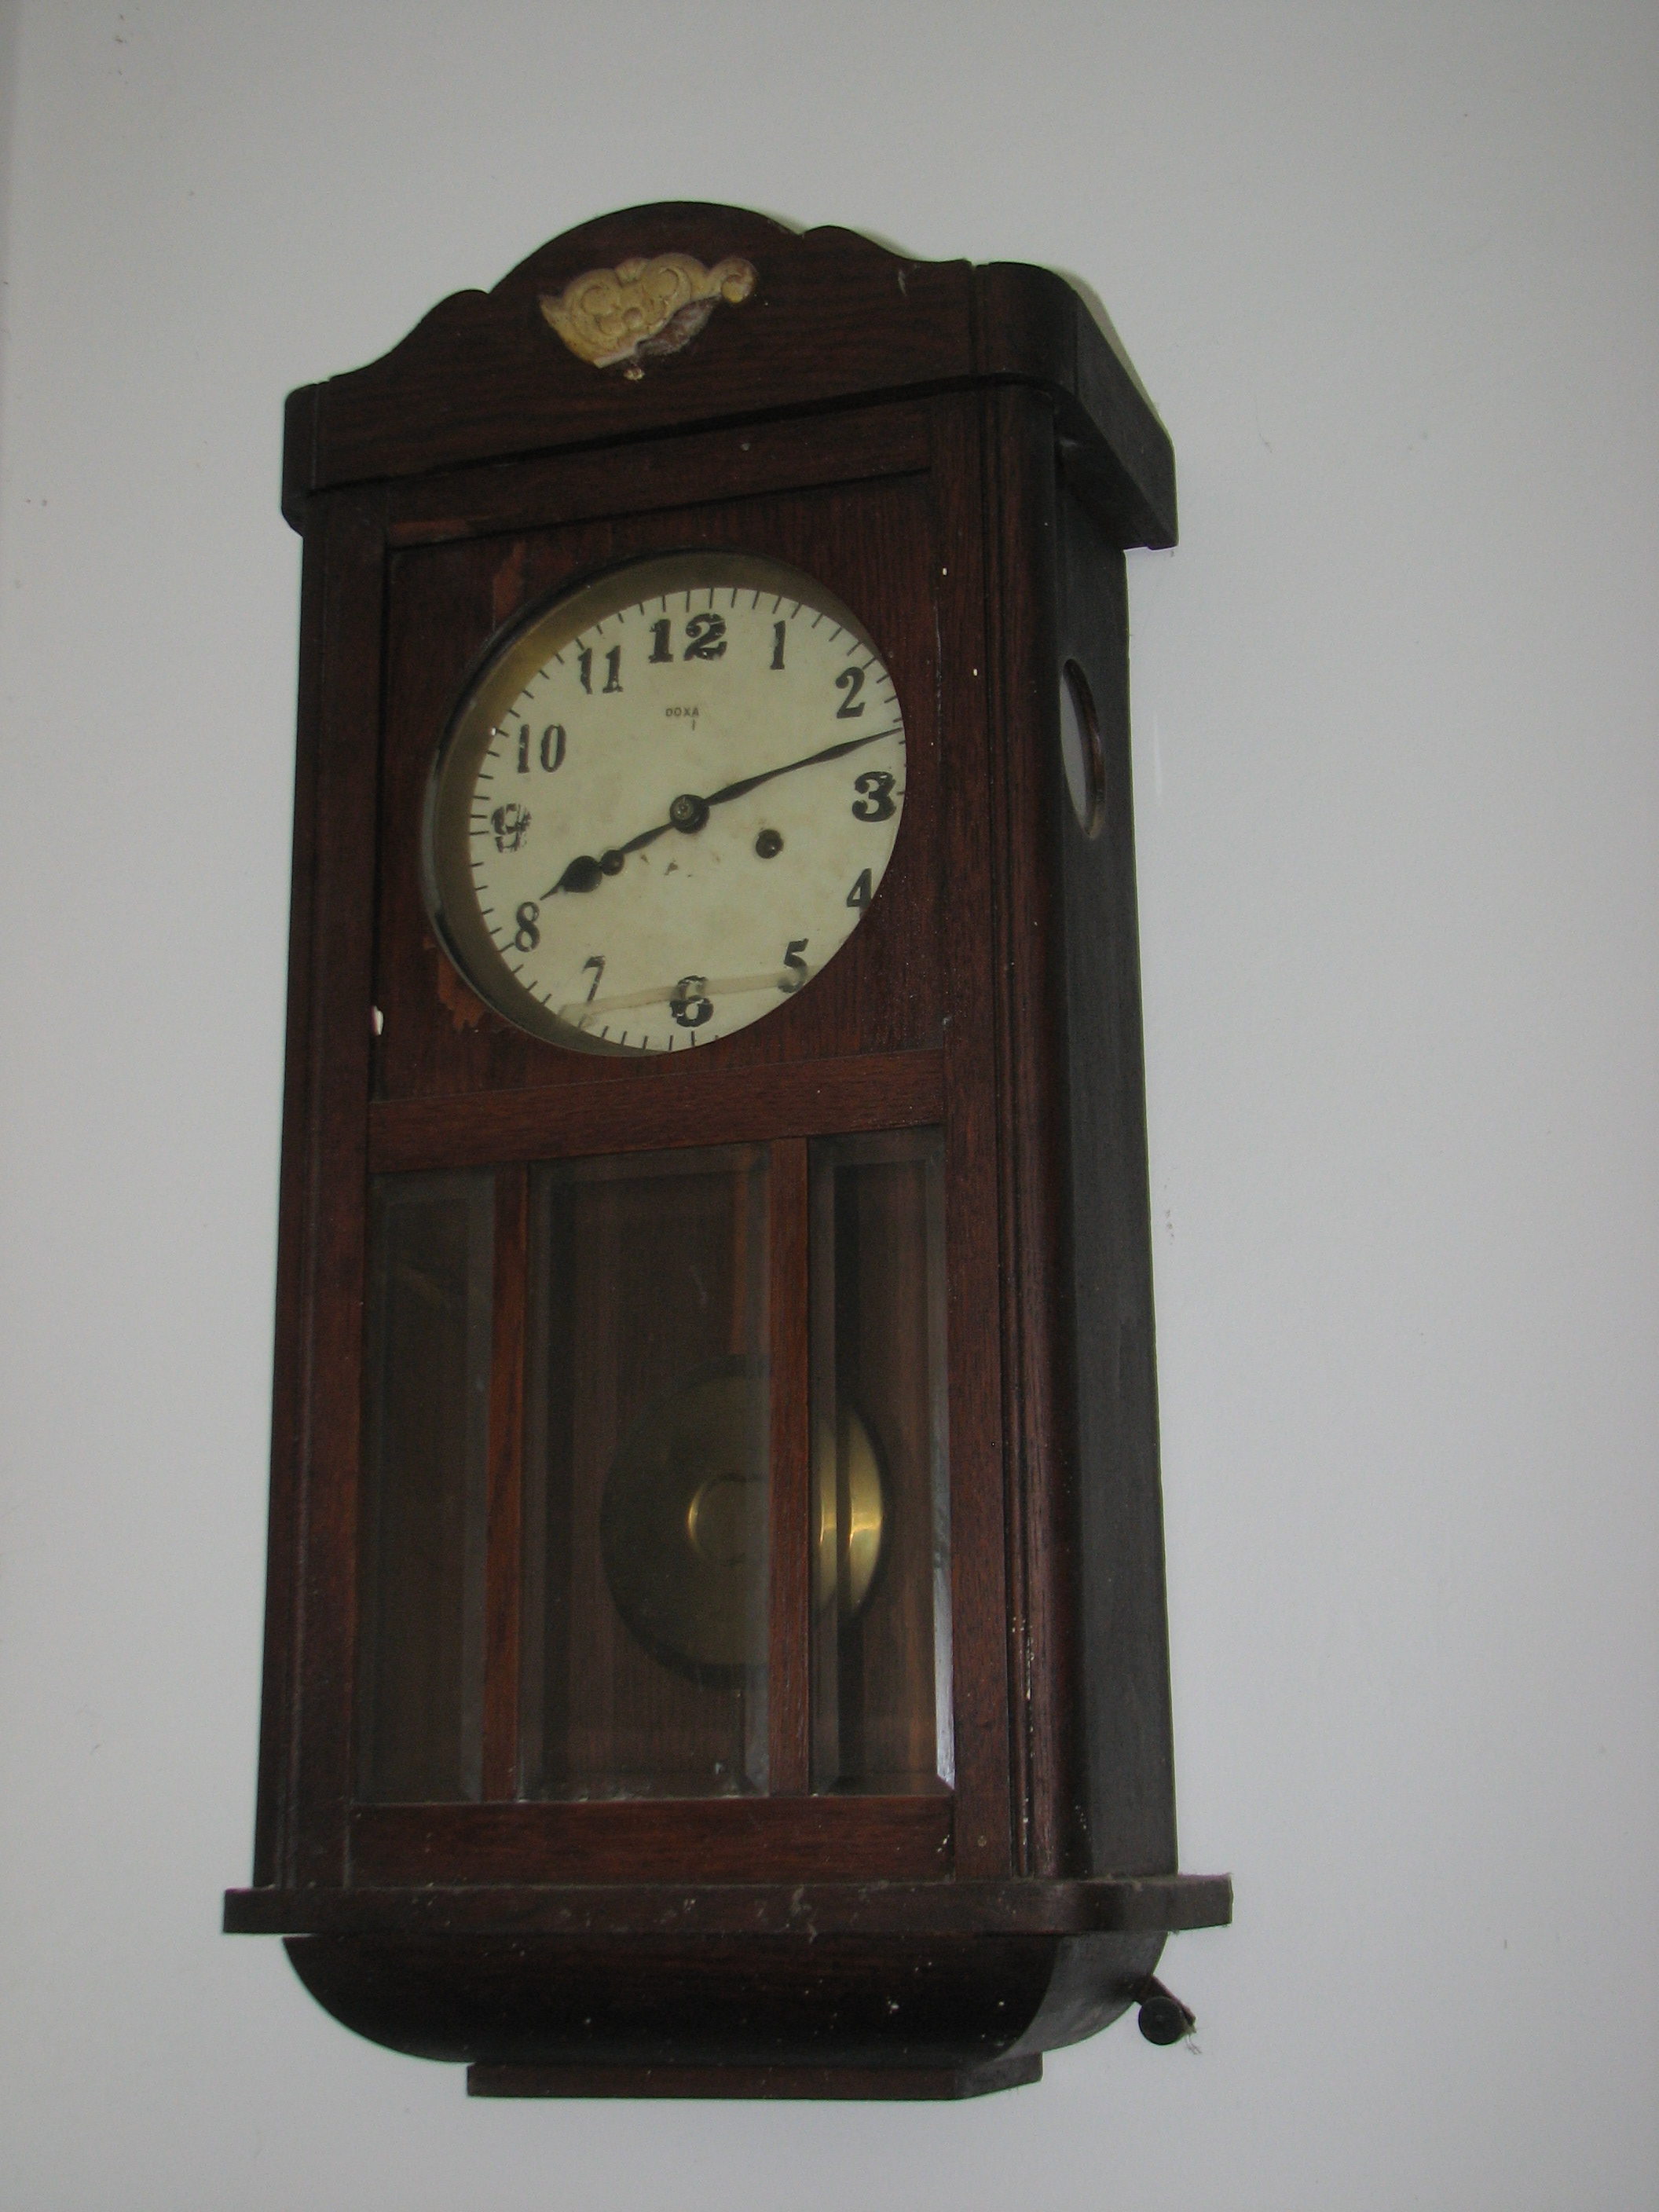 Wall Clocks Sales Doxa Old Wall Clocks For Sale Antiques Classifieds